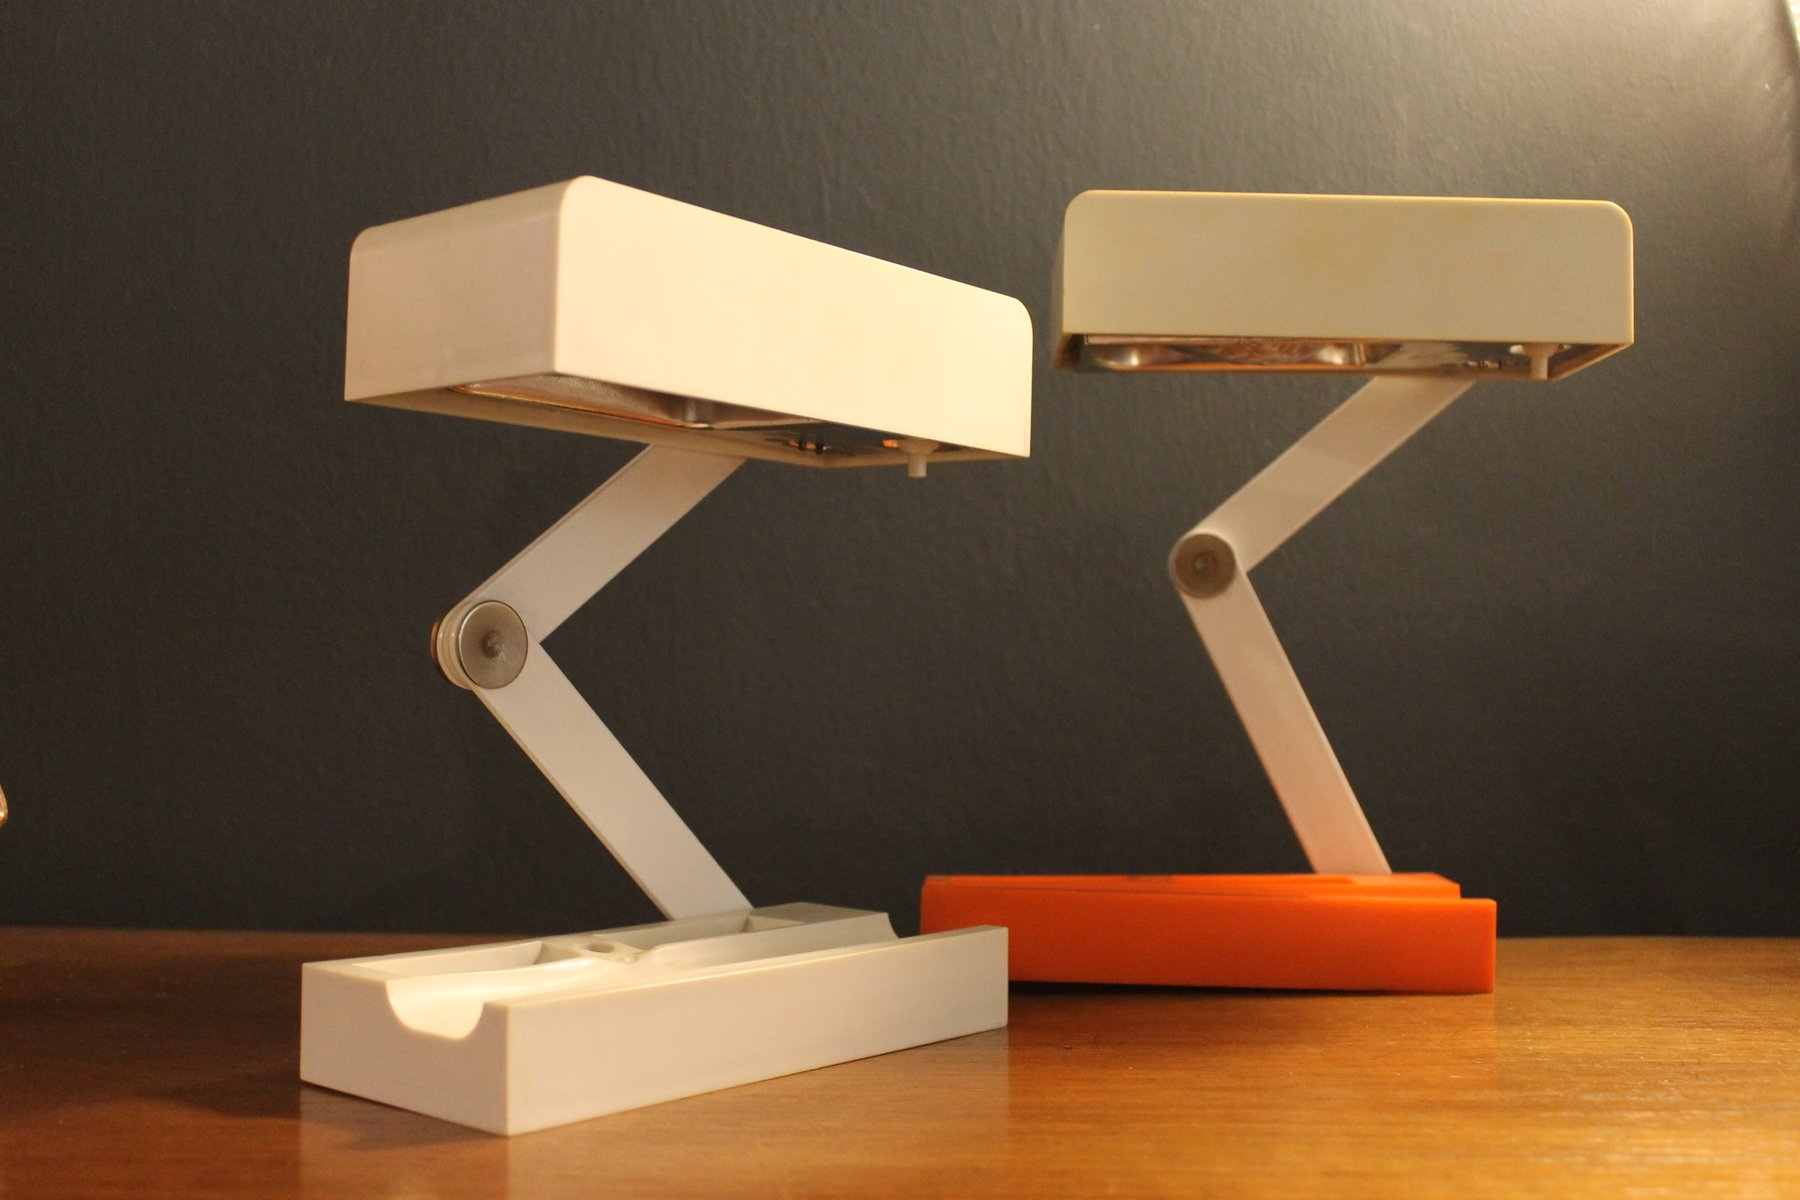 Delightful Candle Table Lamps By Giotto Stoppino For Fontana Arte, 1960s, Set Of 2